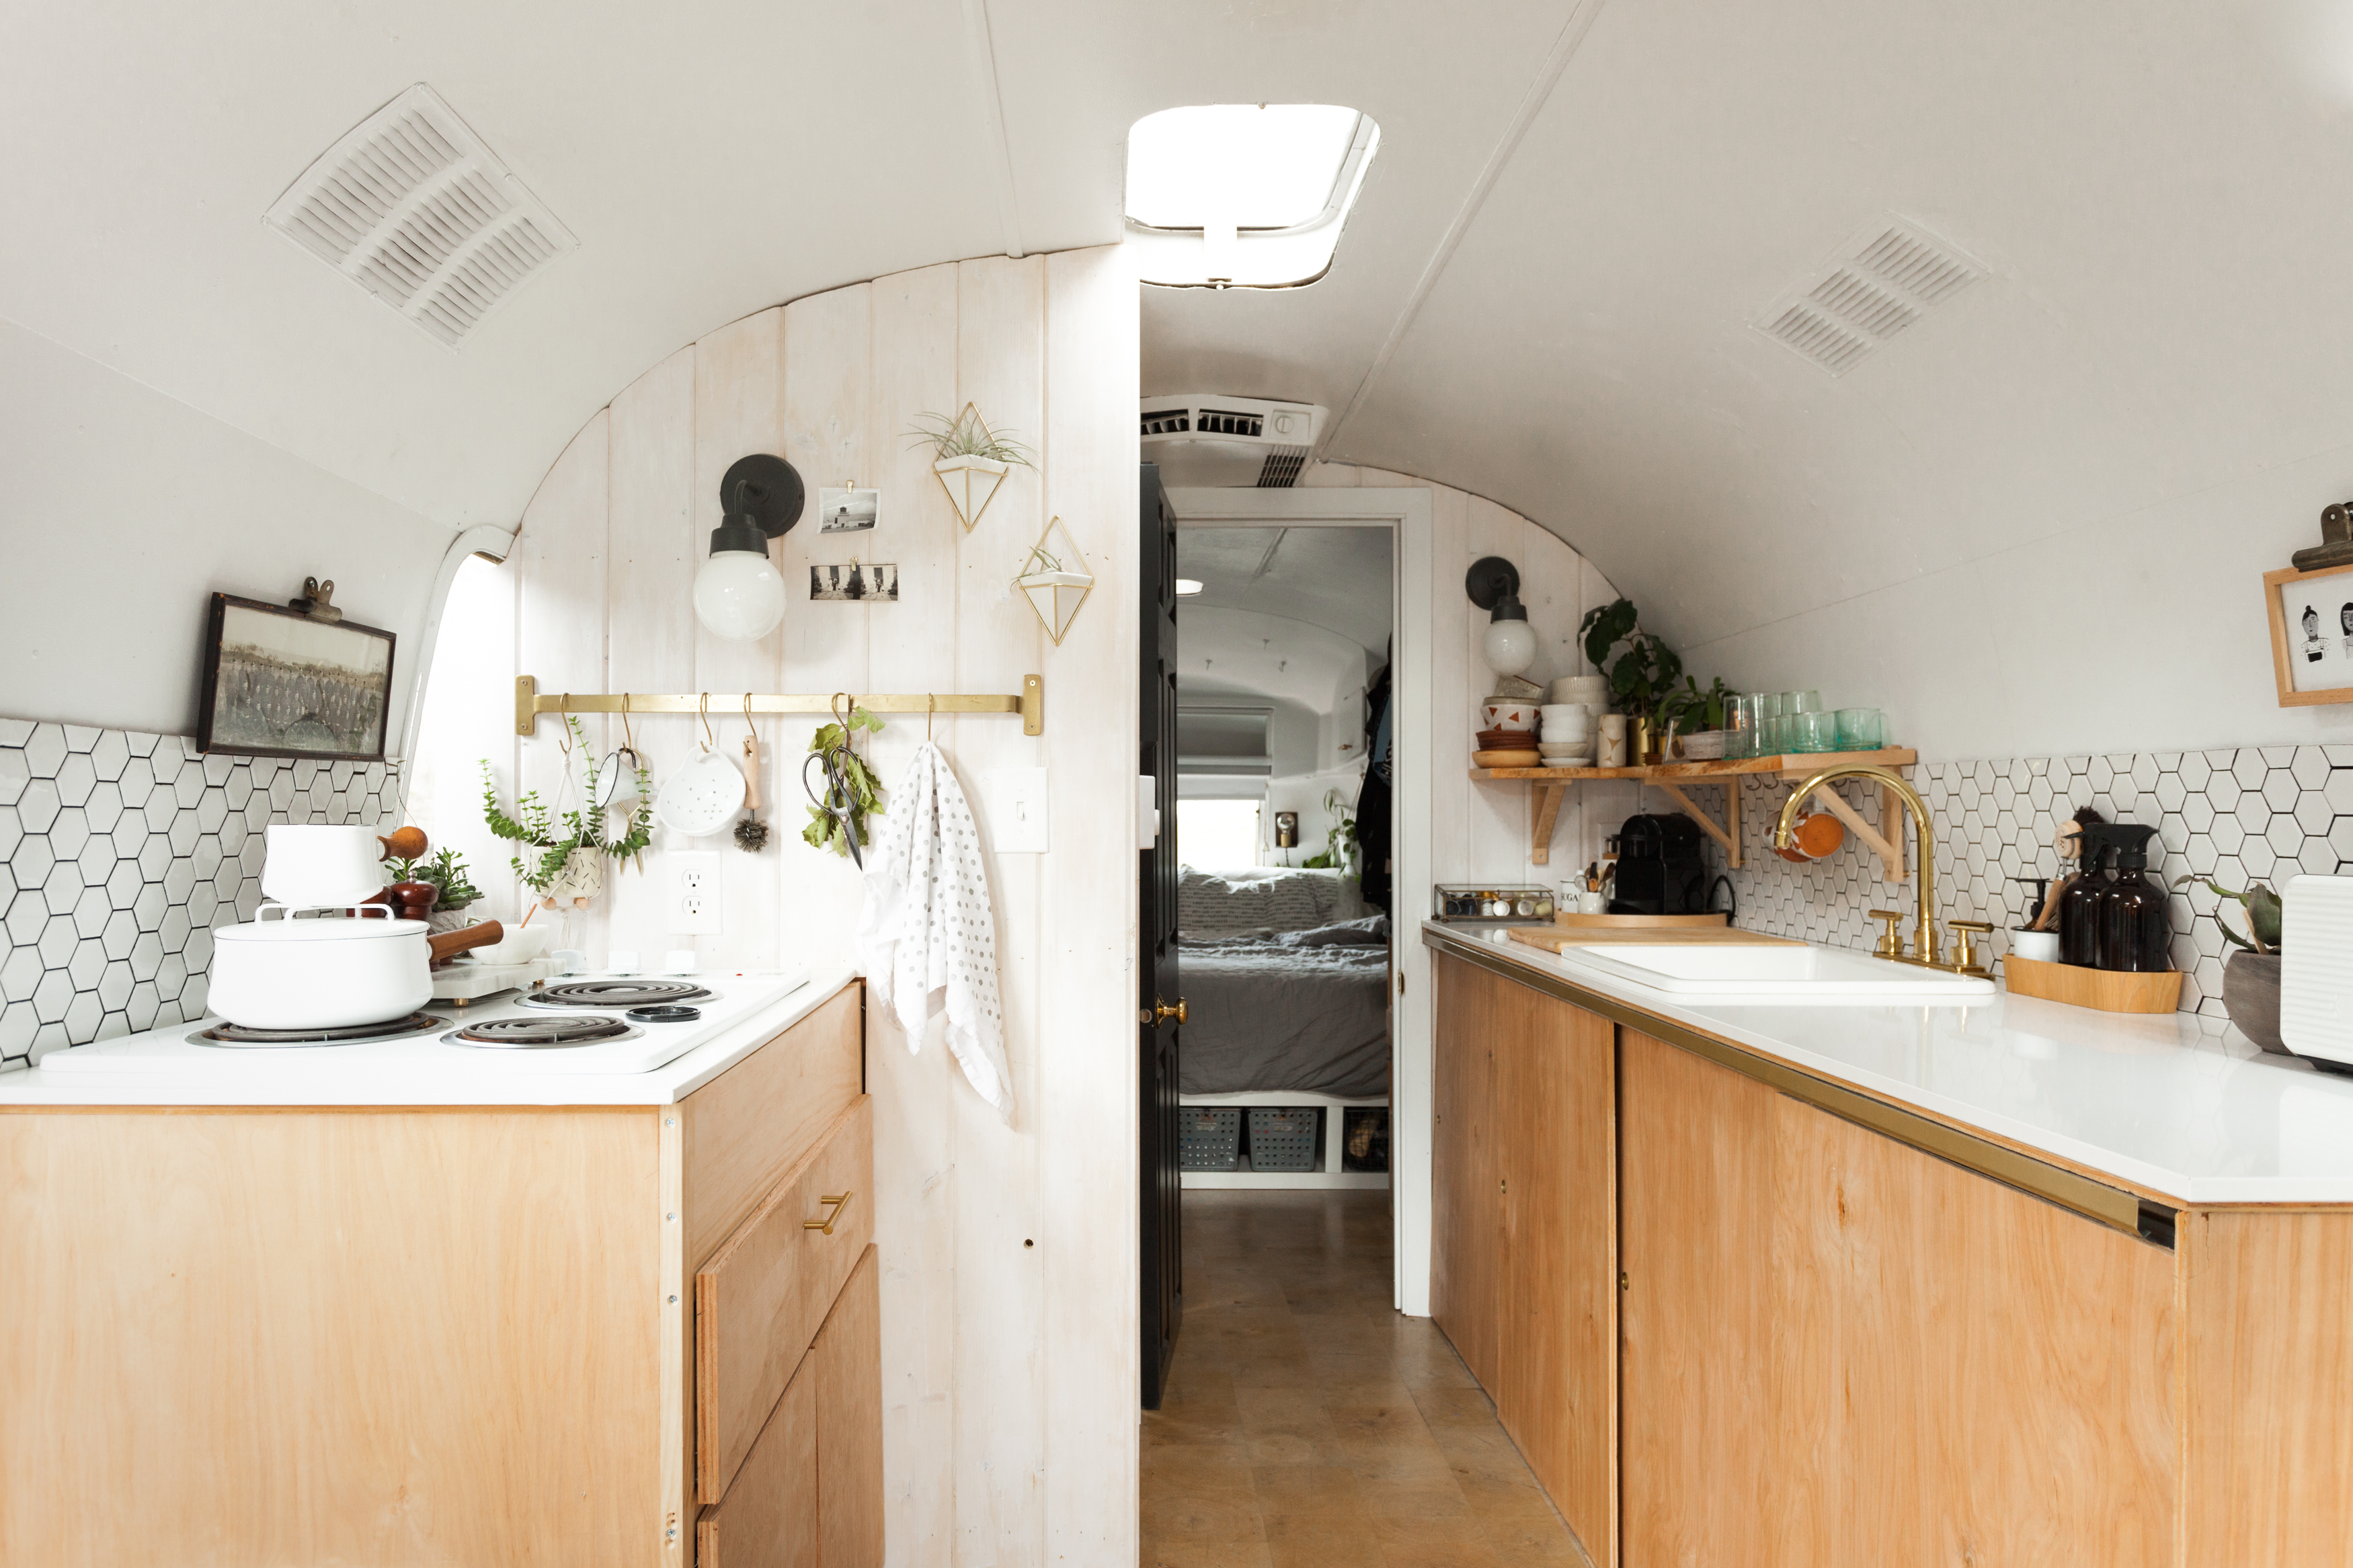 7 Storage Ideas to Steal from This Airstream Kitchen | Kitchn